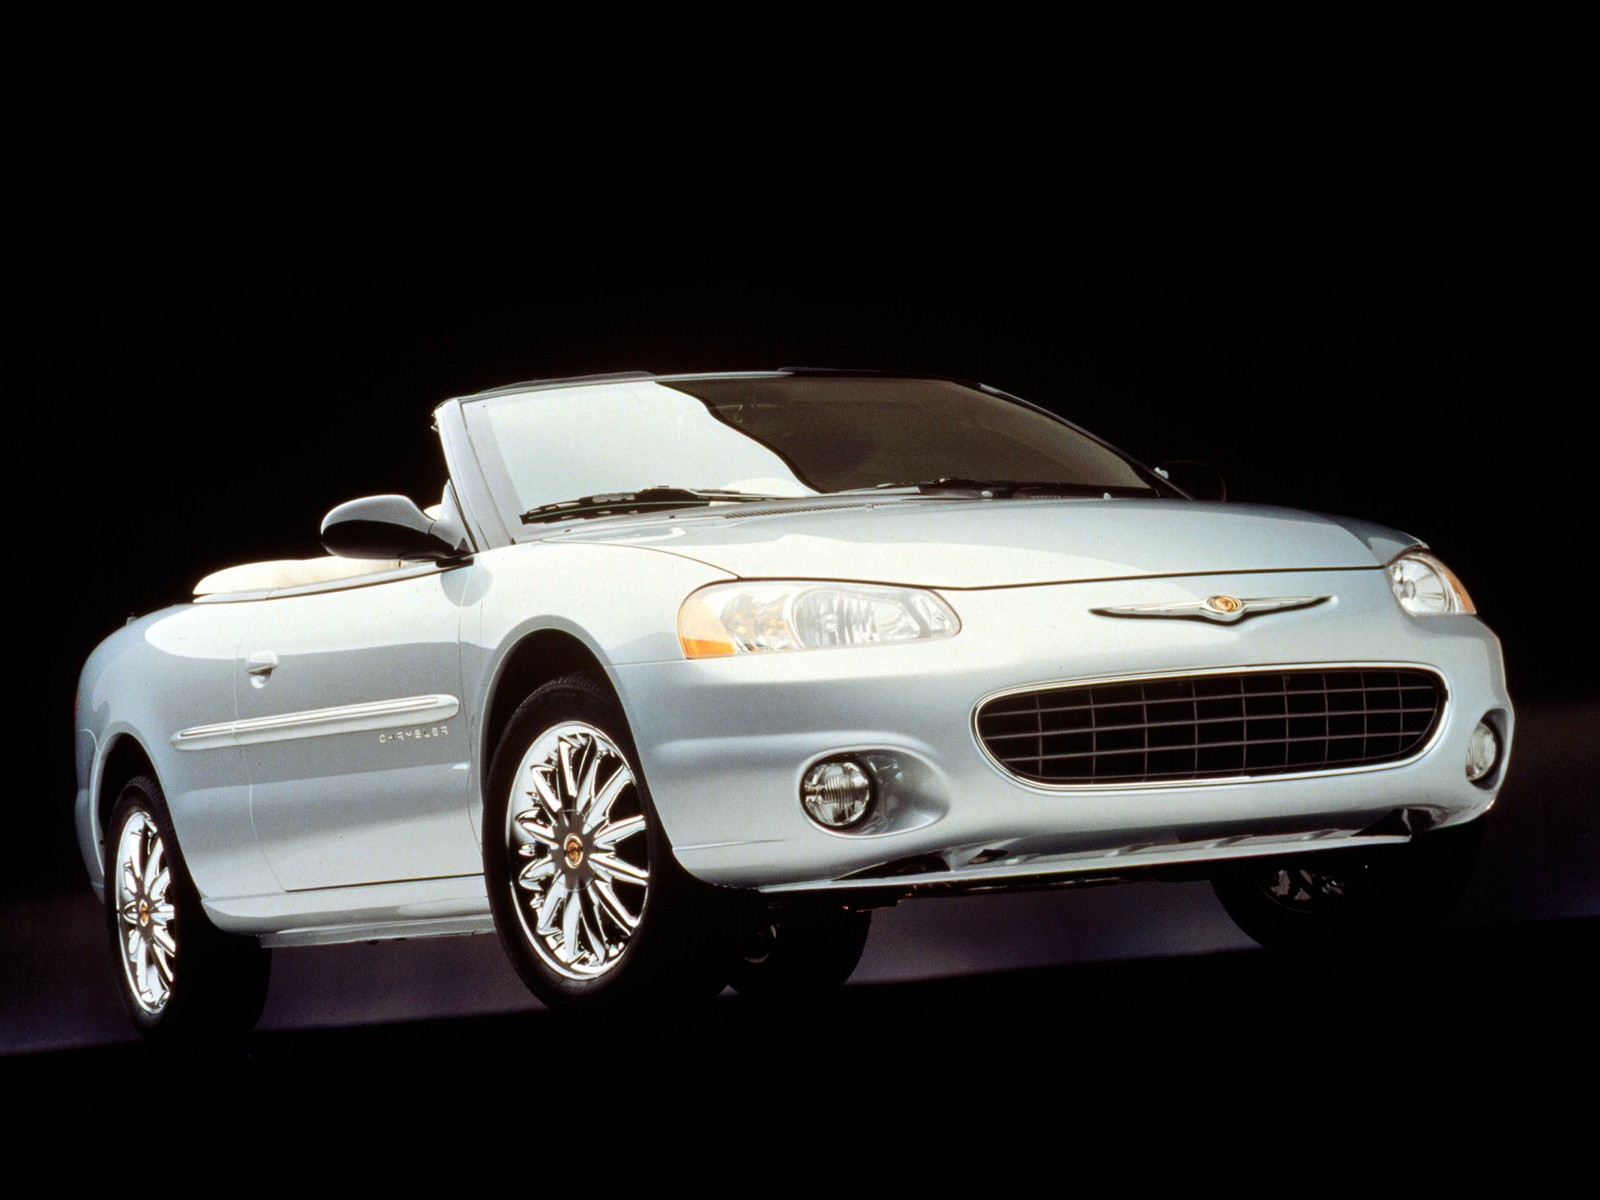 Chrysler Sebring Convertible on 2002 Chrysler Sebring Convertible